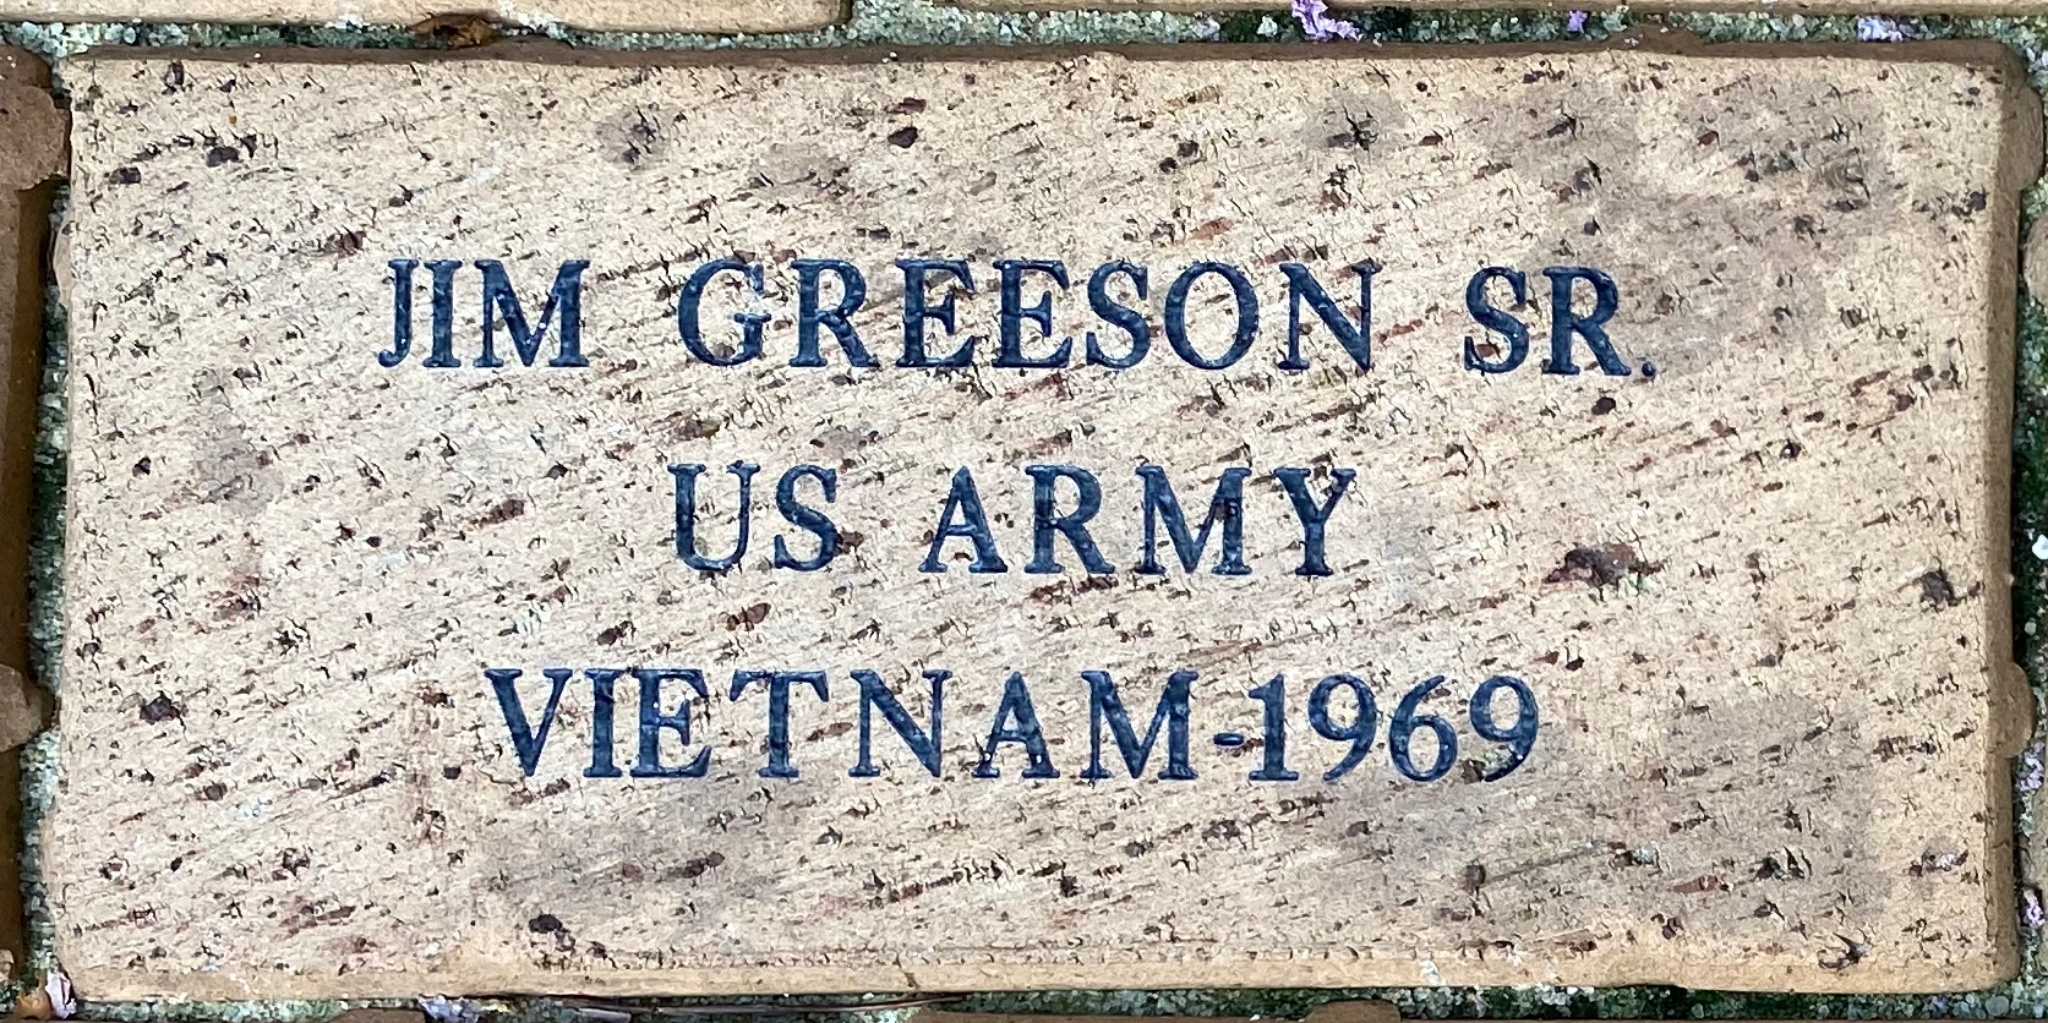 JIM GREESON SR US ARMY VIETNAM – 1969